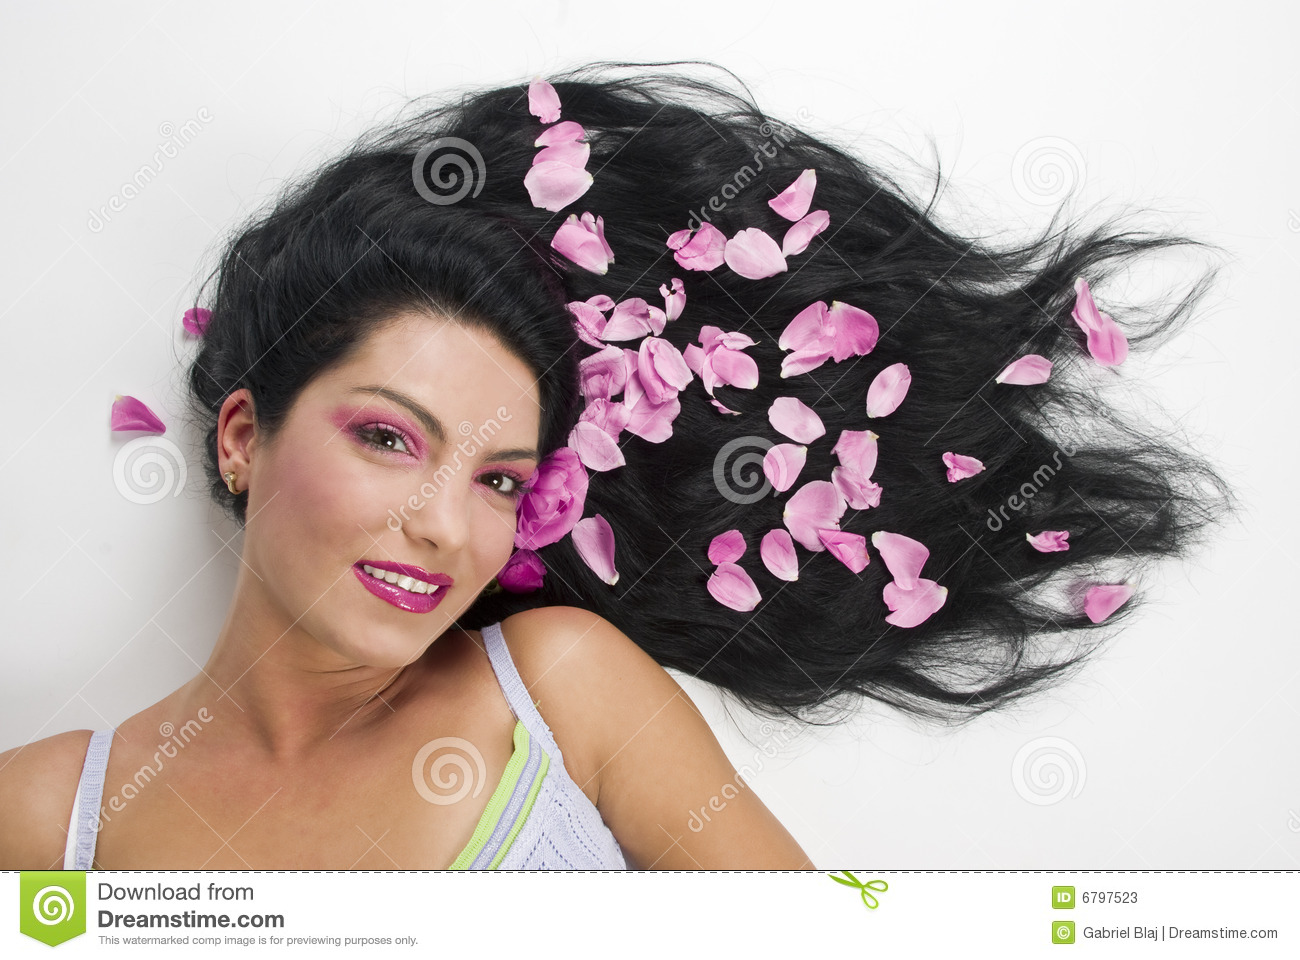 Long hair with pink rose petals